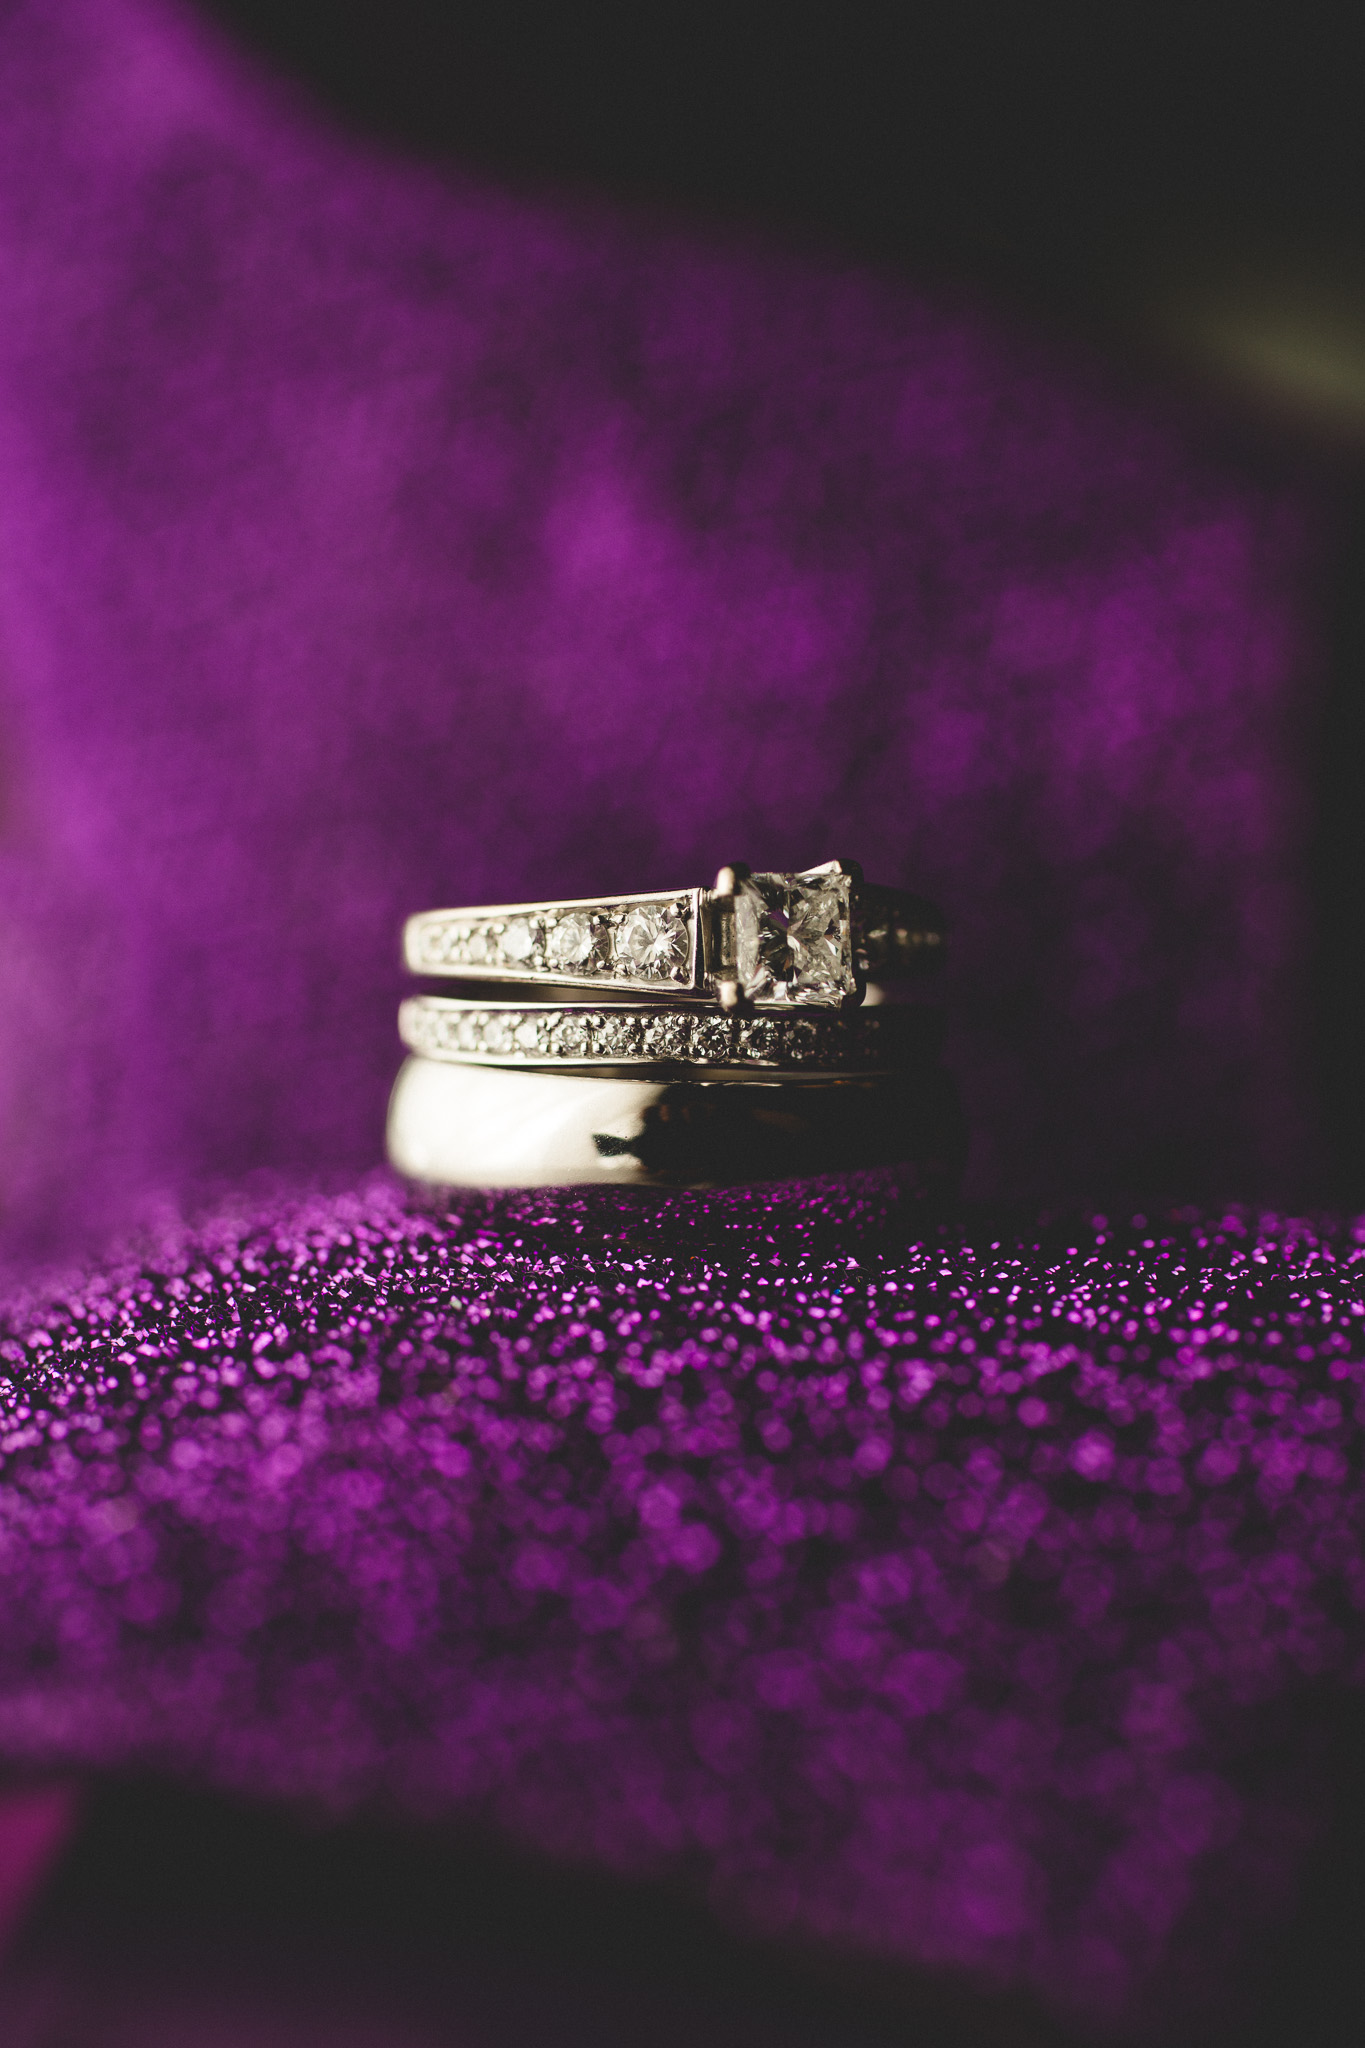 Using-a-shoe-for-wedding-ring-photos